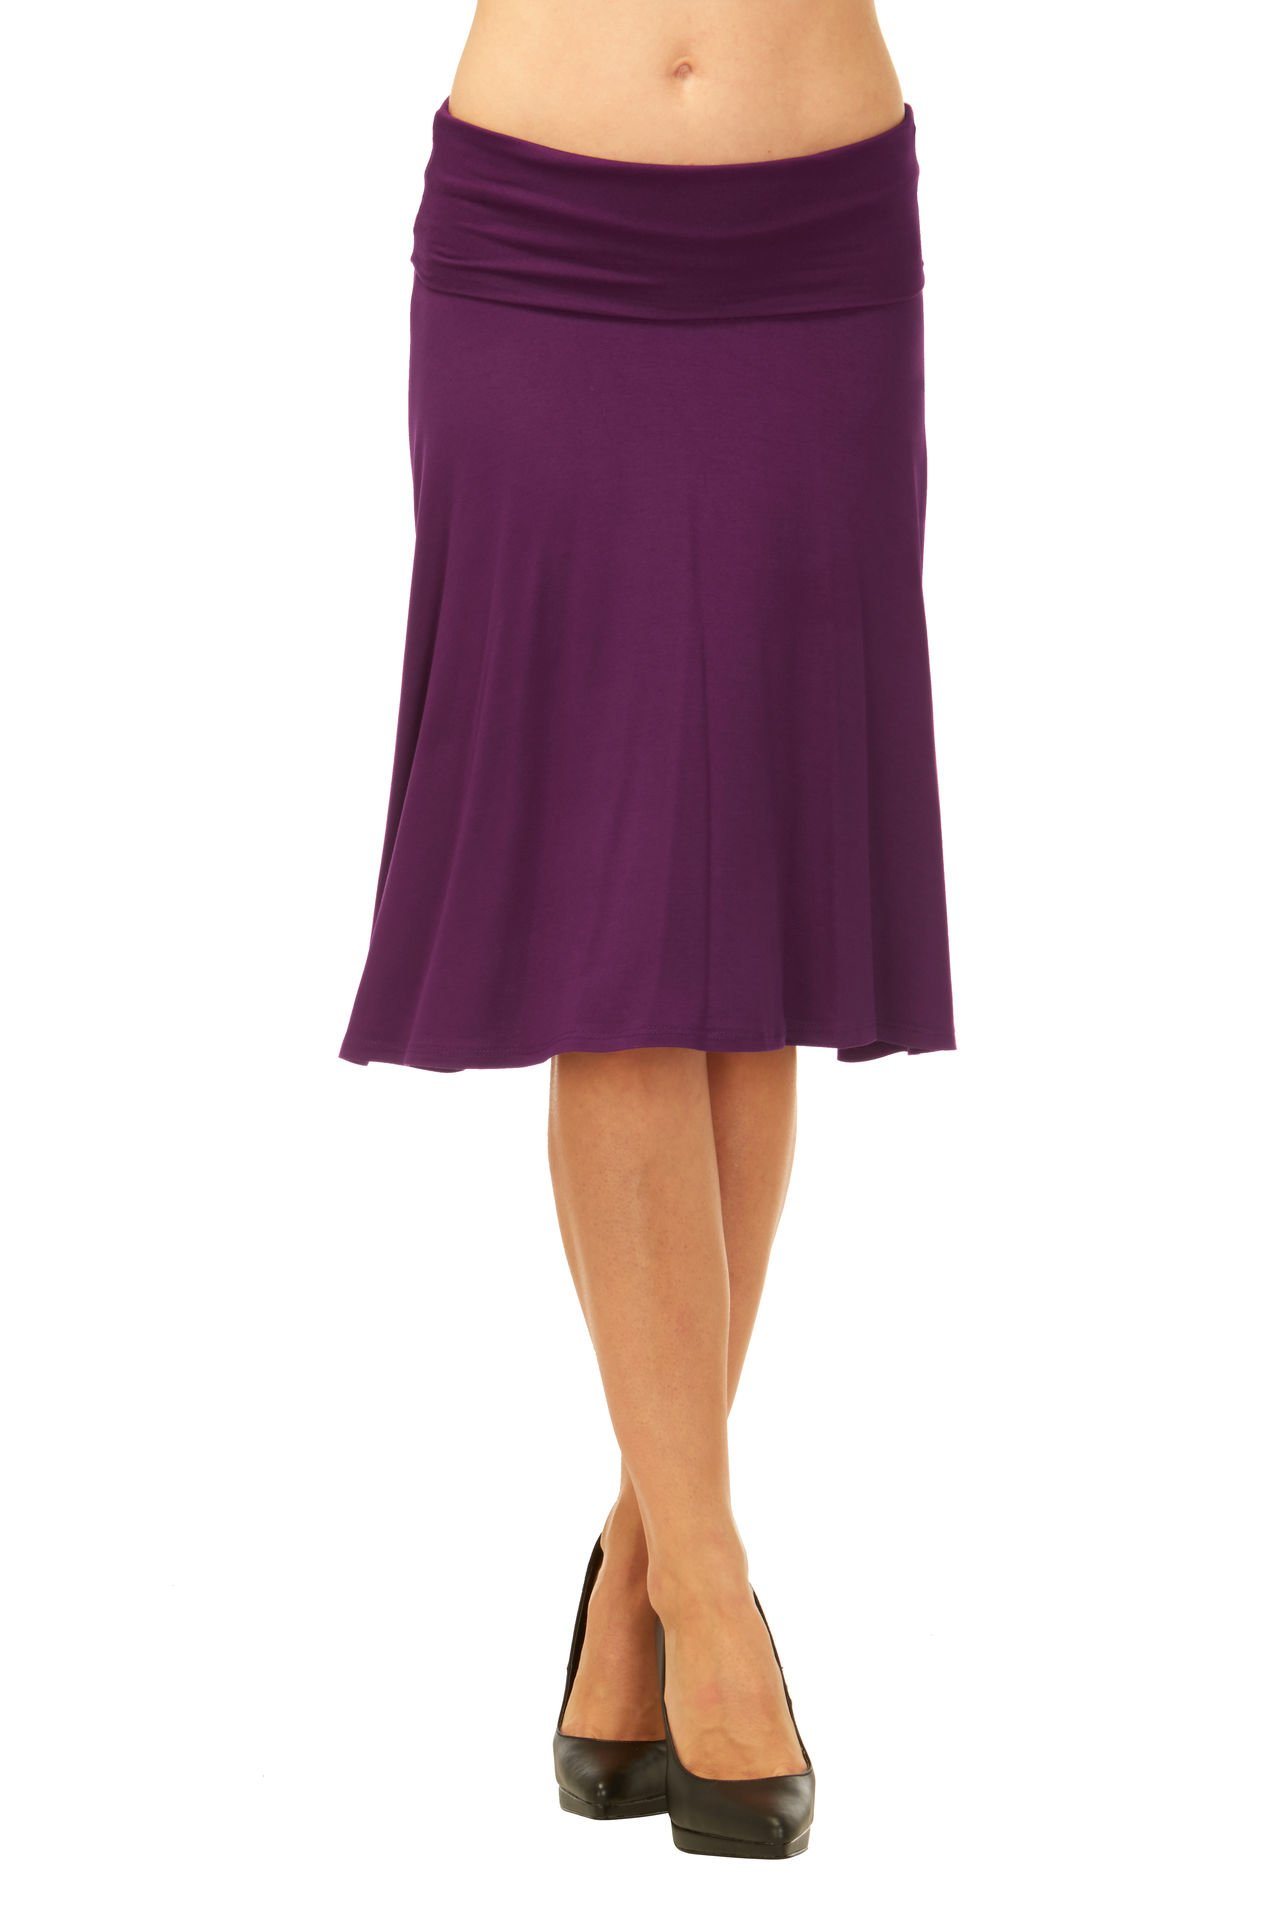 Red Hanger Womens Basic Solid Stretch Fold-Over Flare Midi Skirt (Eggplant-XL) by Red Hanger